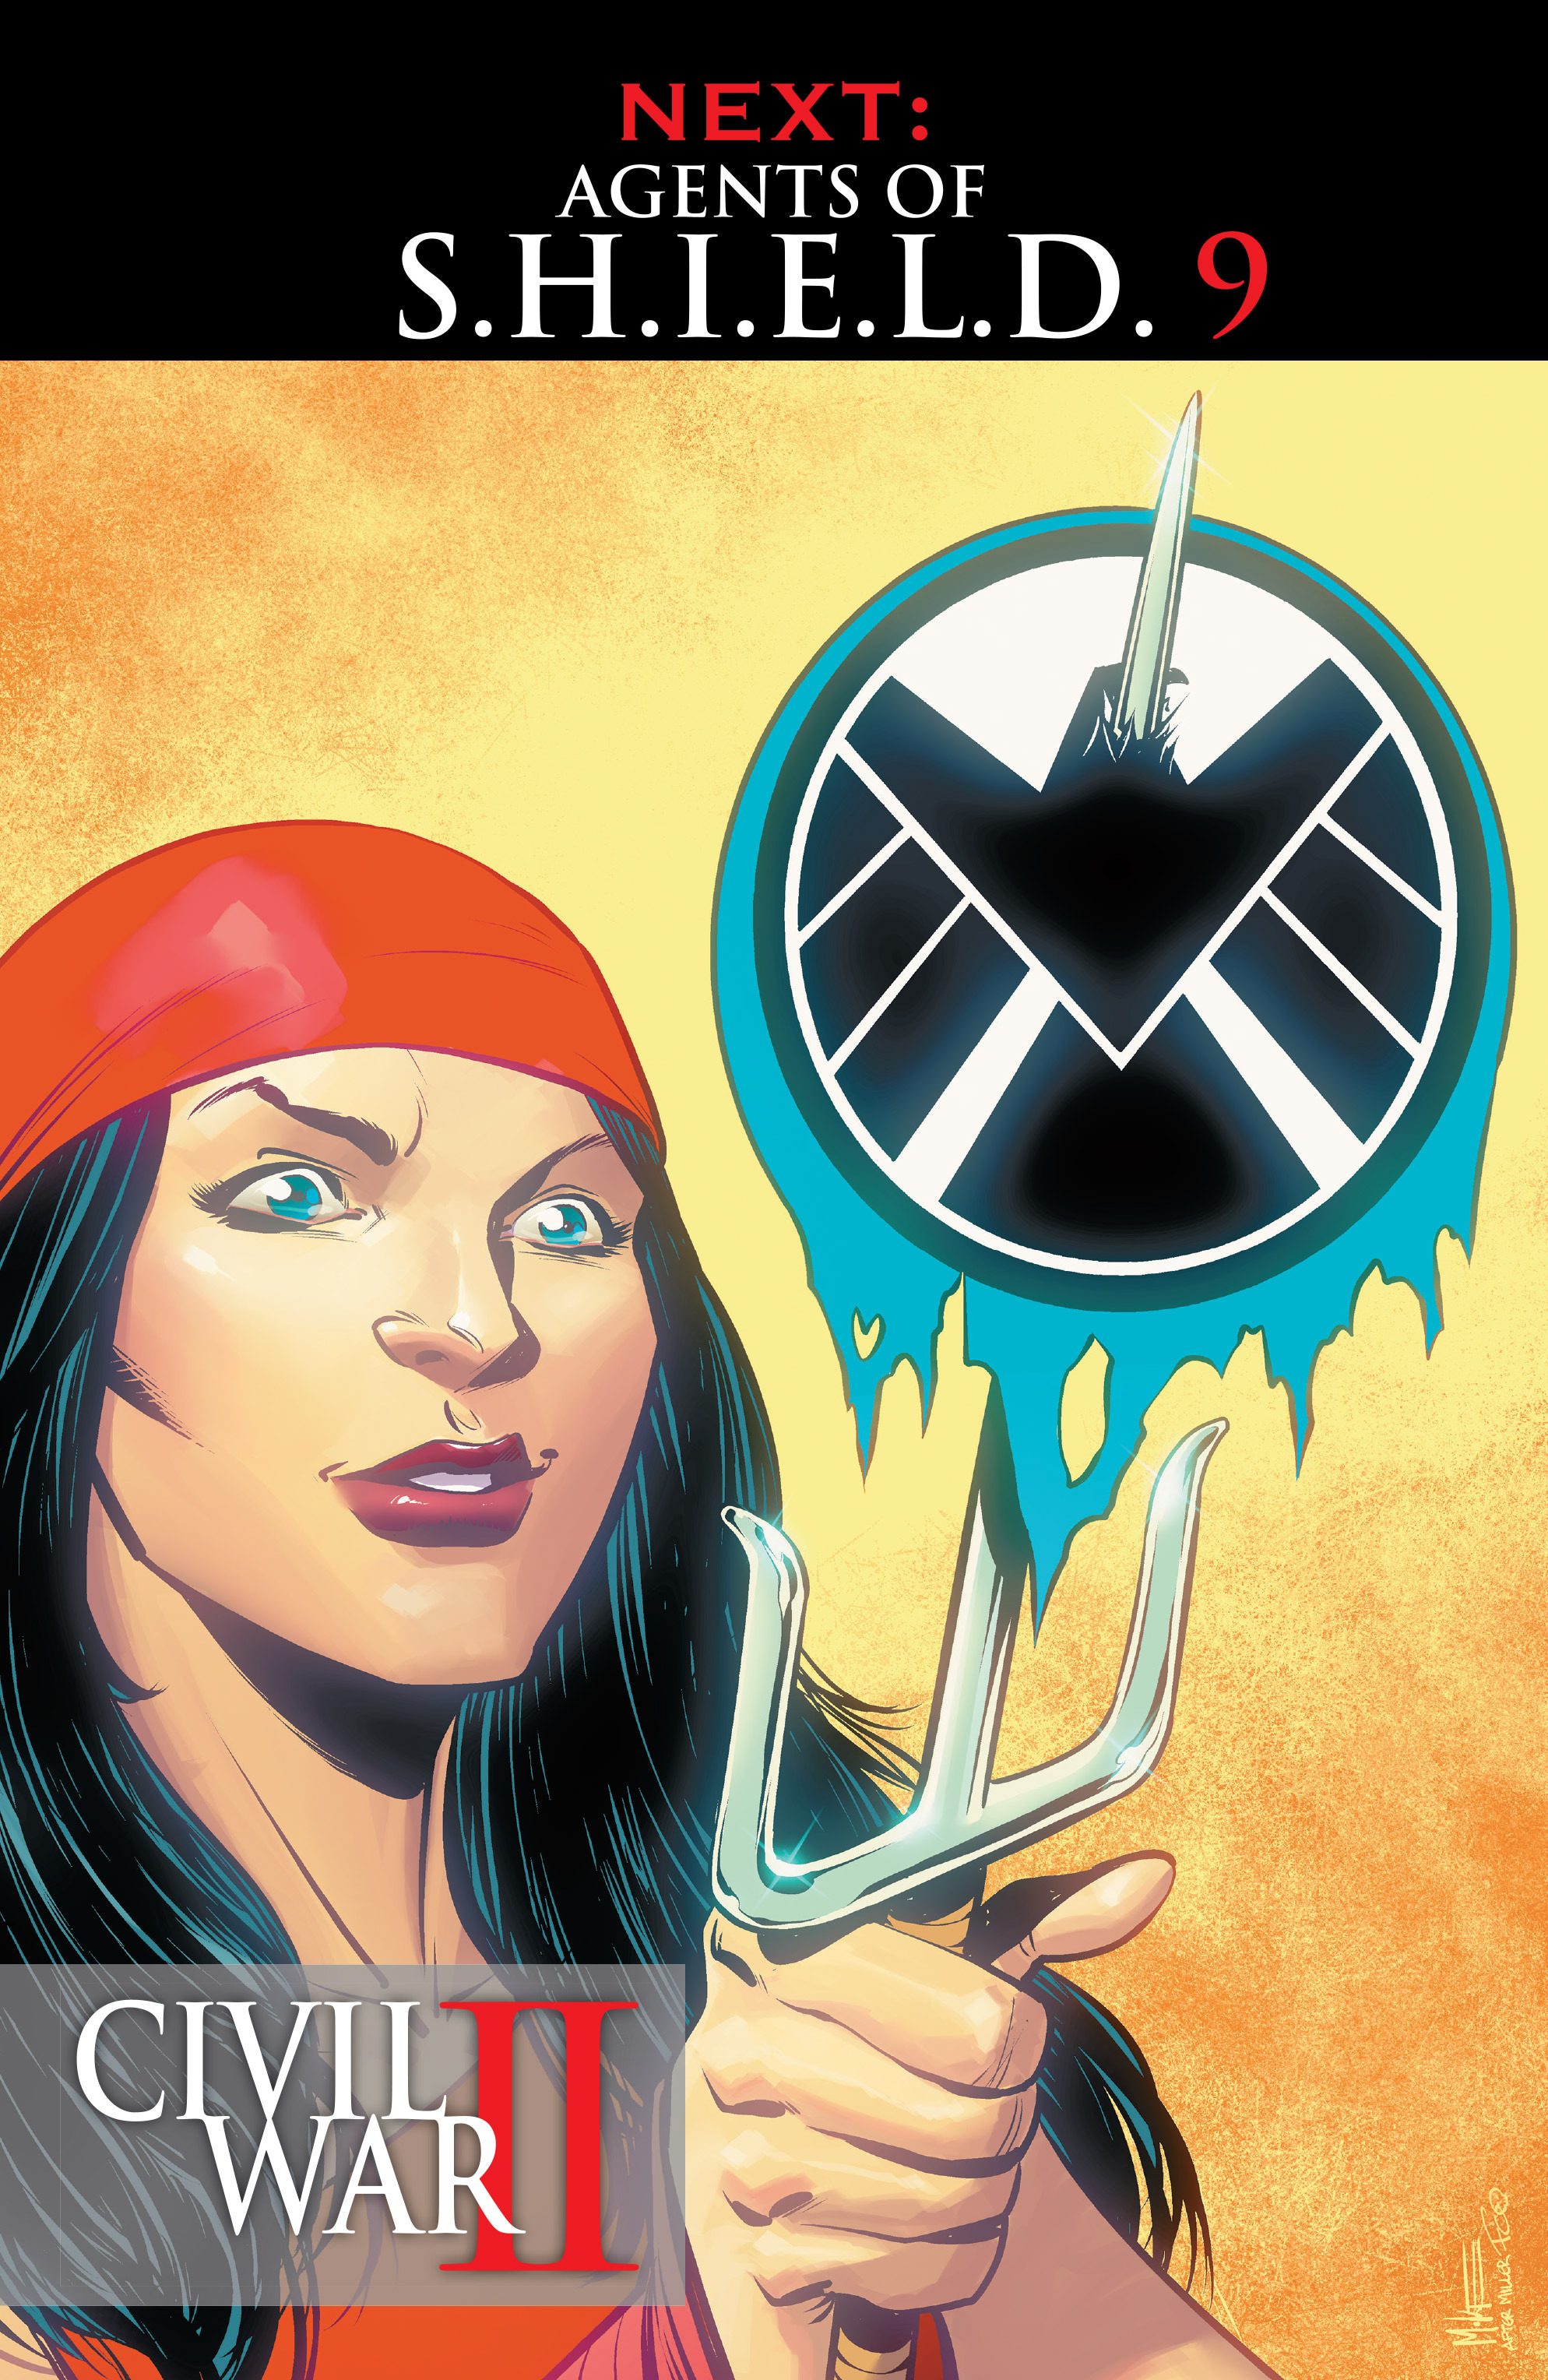 Read online Agents of S.H.I.E.L.D. comic -  Issue #8 - 21